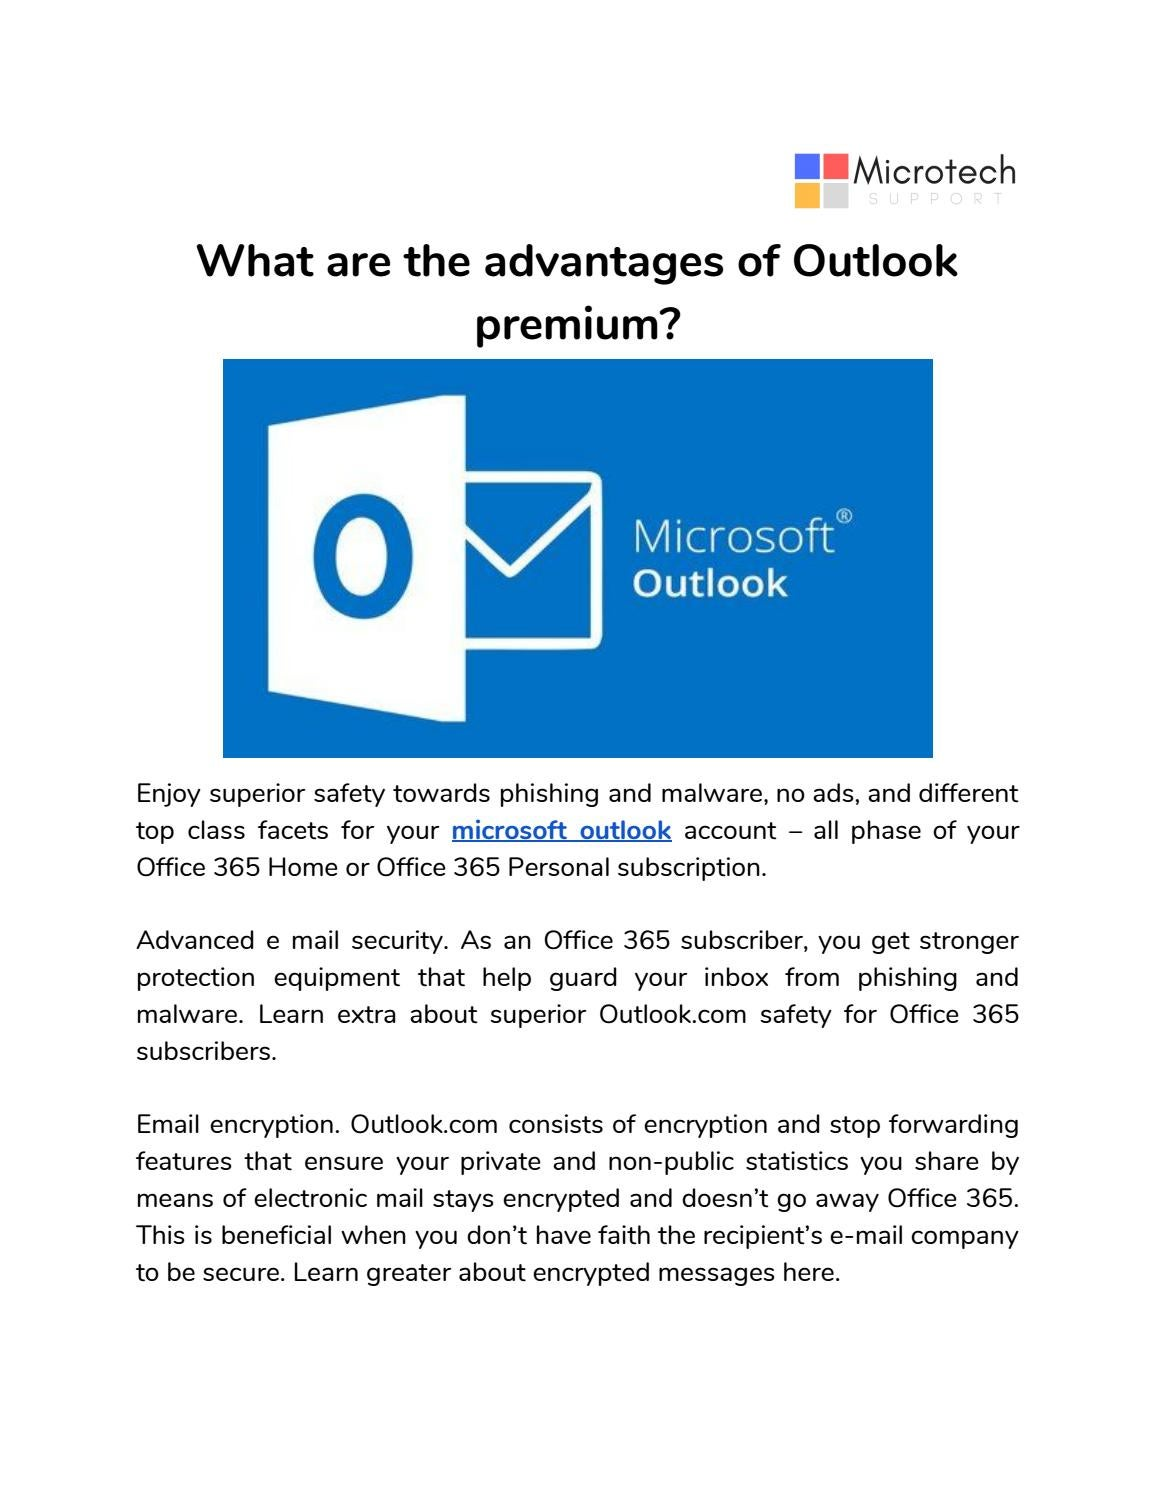 Microsoft office 365 email essentials